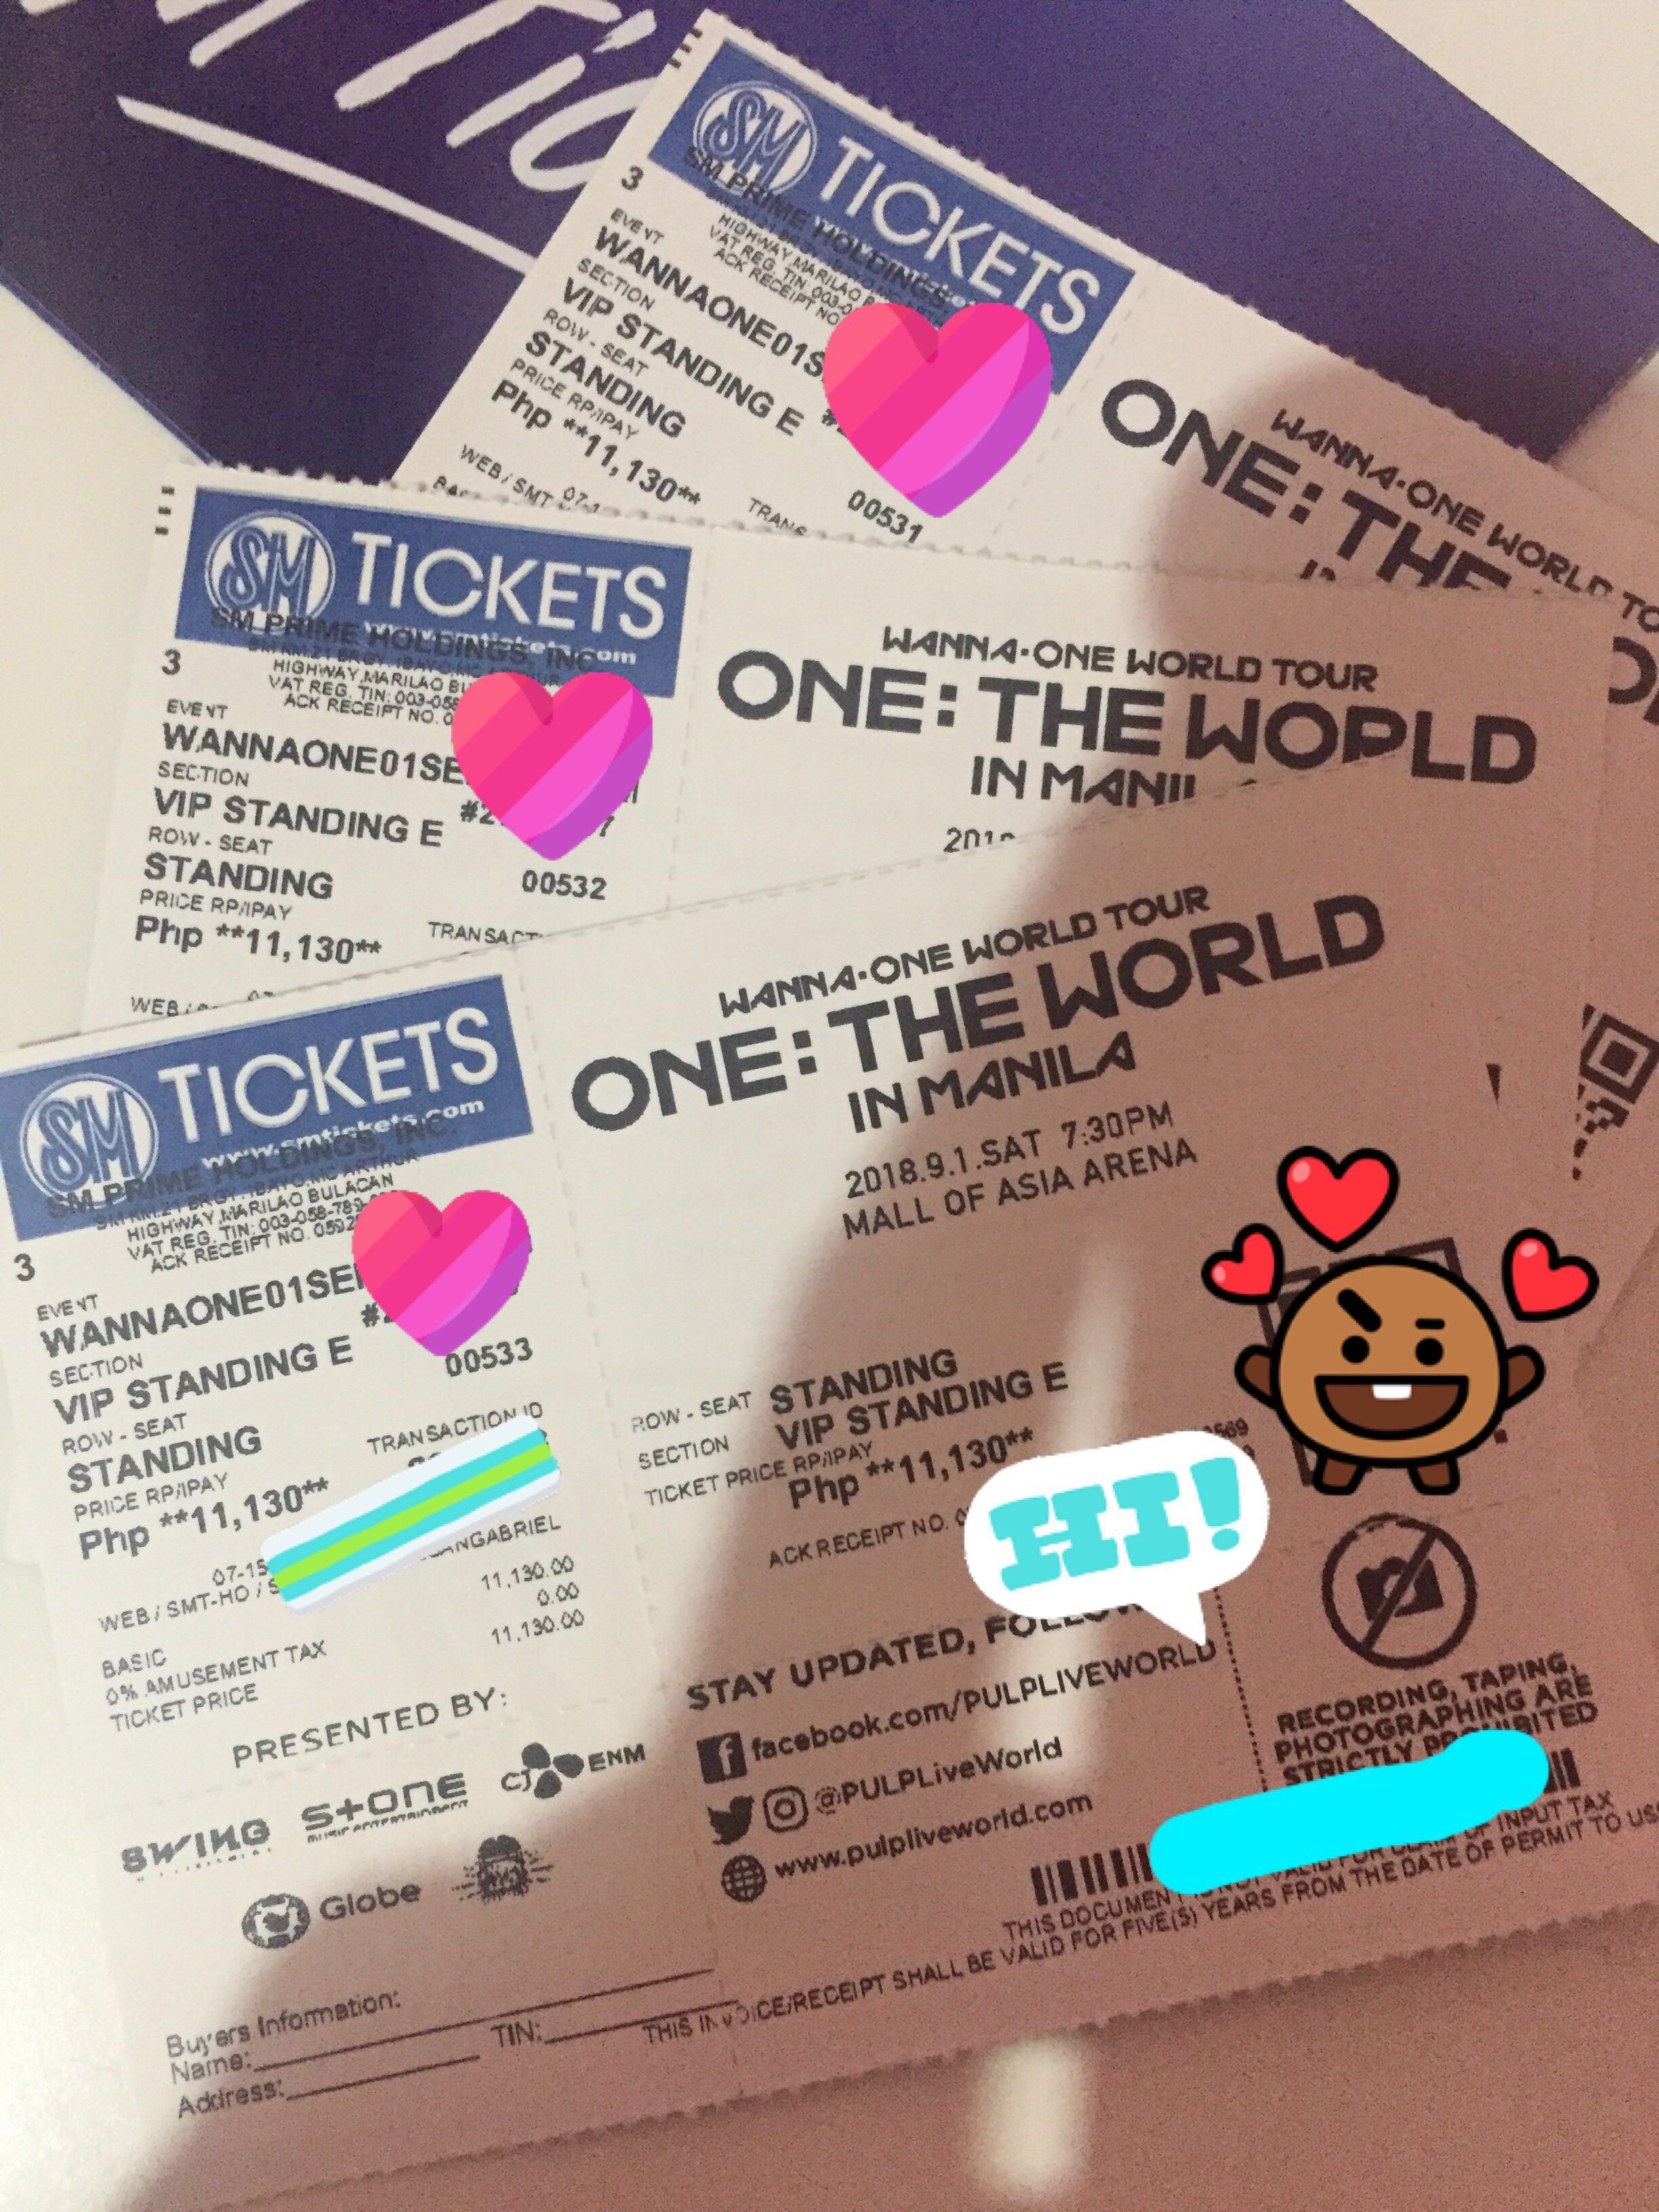 Concert tickets.(3) VIP Standing E One:The World Concert tickets, Tickets/Vouchers, Event Tickets on Carousell